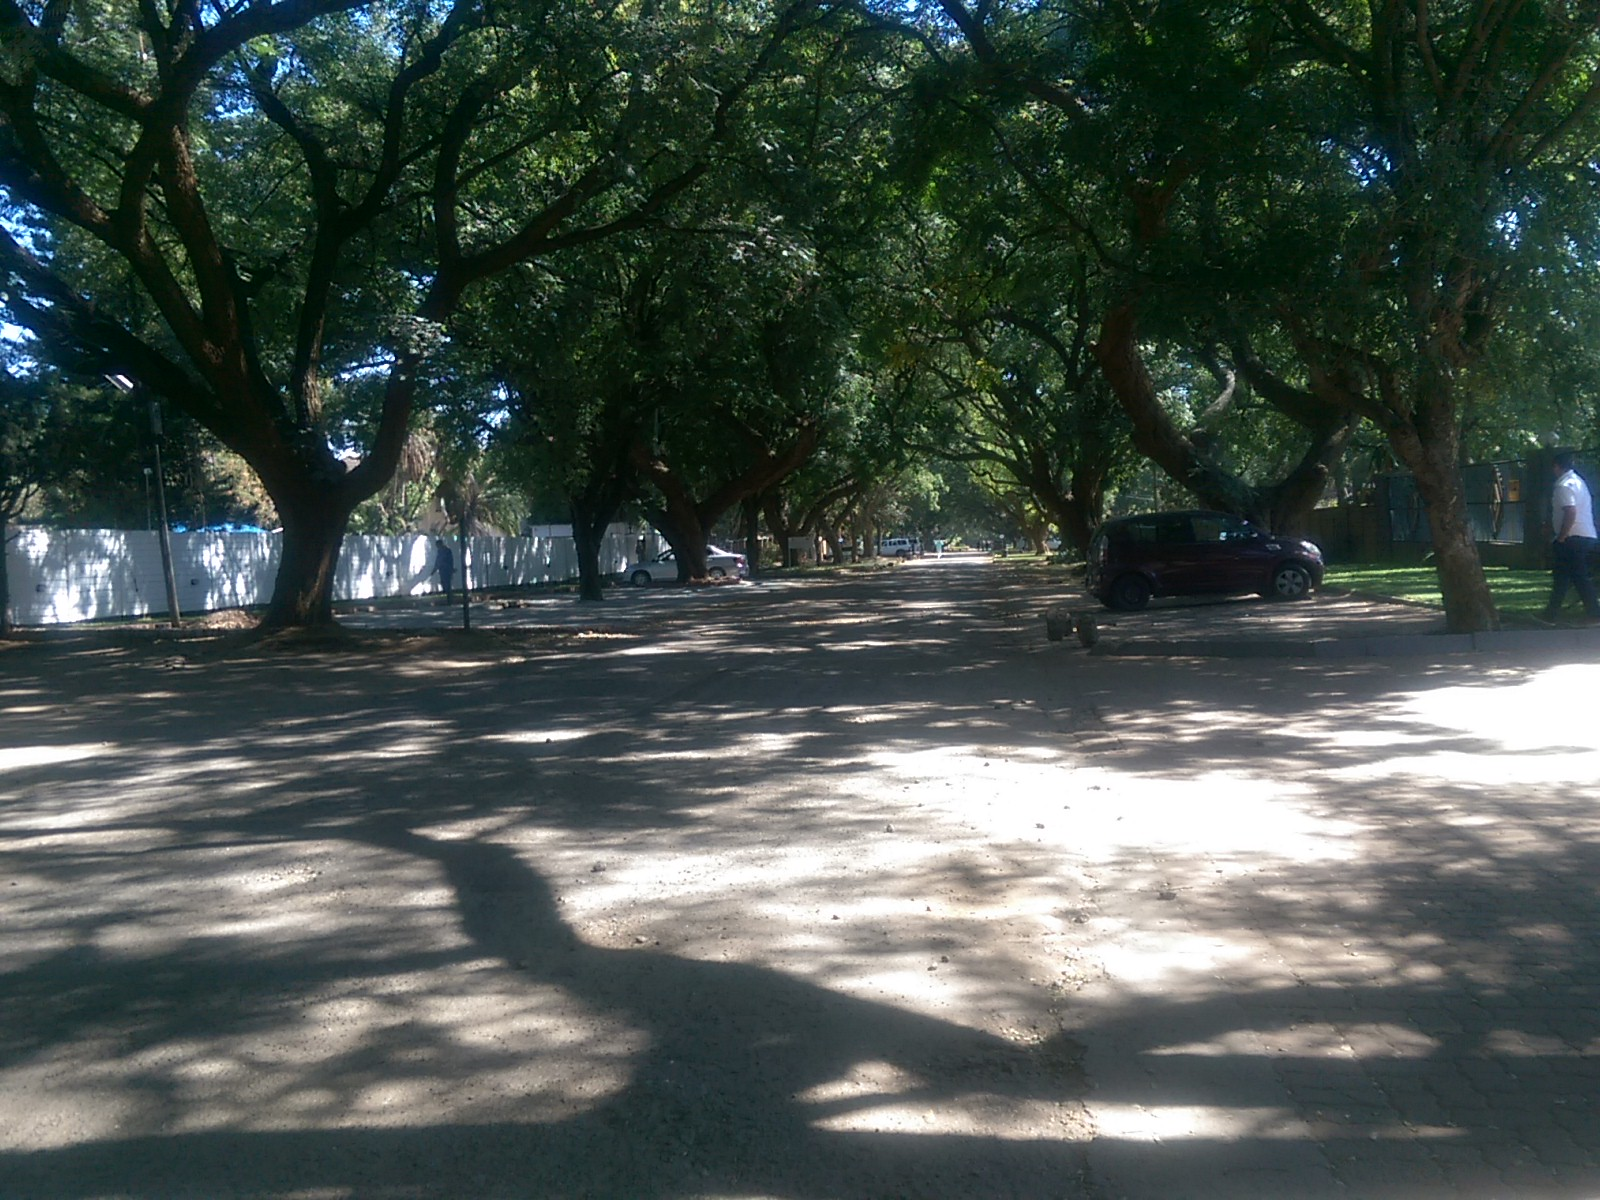 A wide road with trees at the edge and mottled branch shadows across the ground